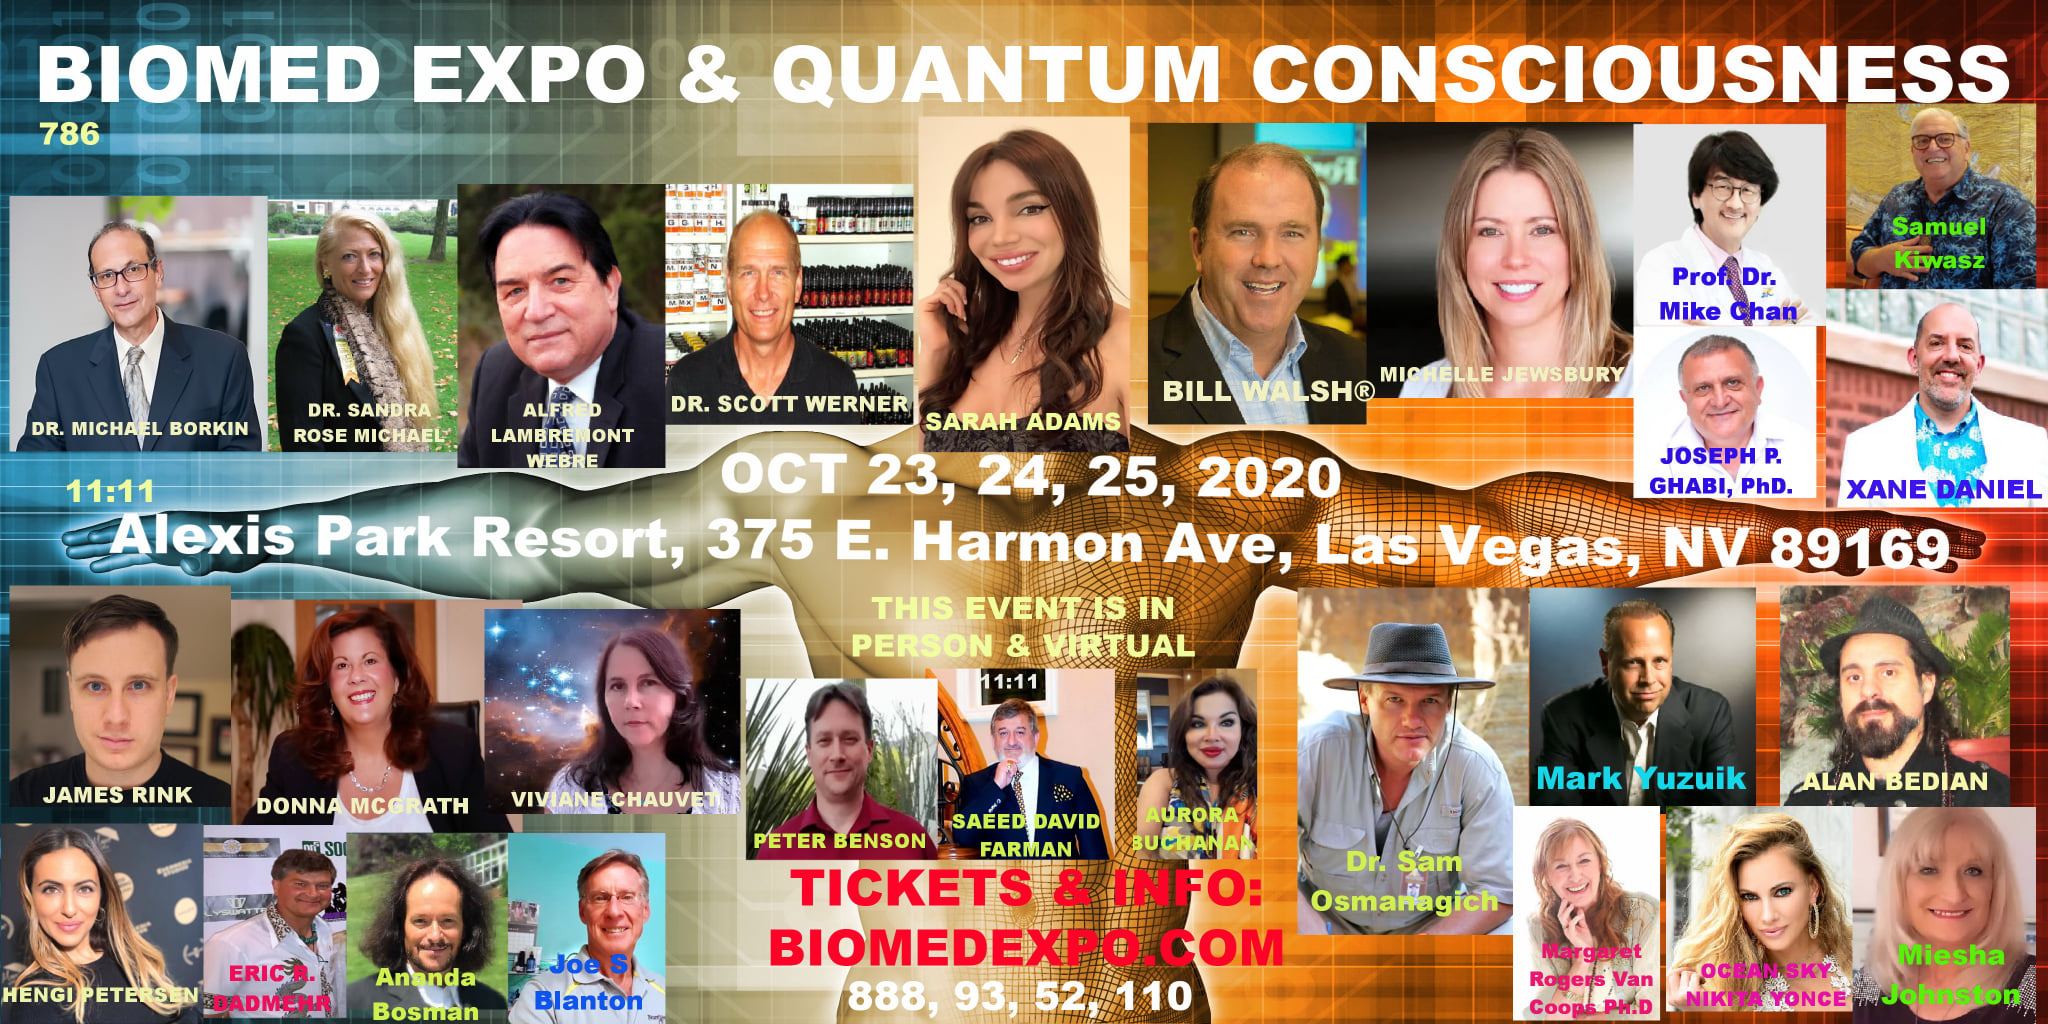 James Rink Speaking at the BIOMED EXPO & QUANTUM CONSCIOUSNESS